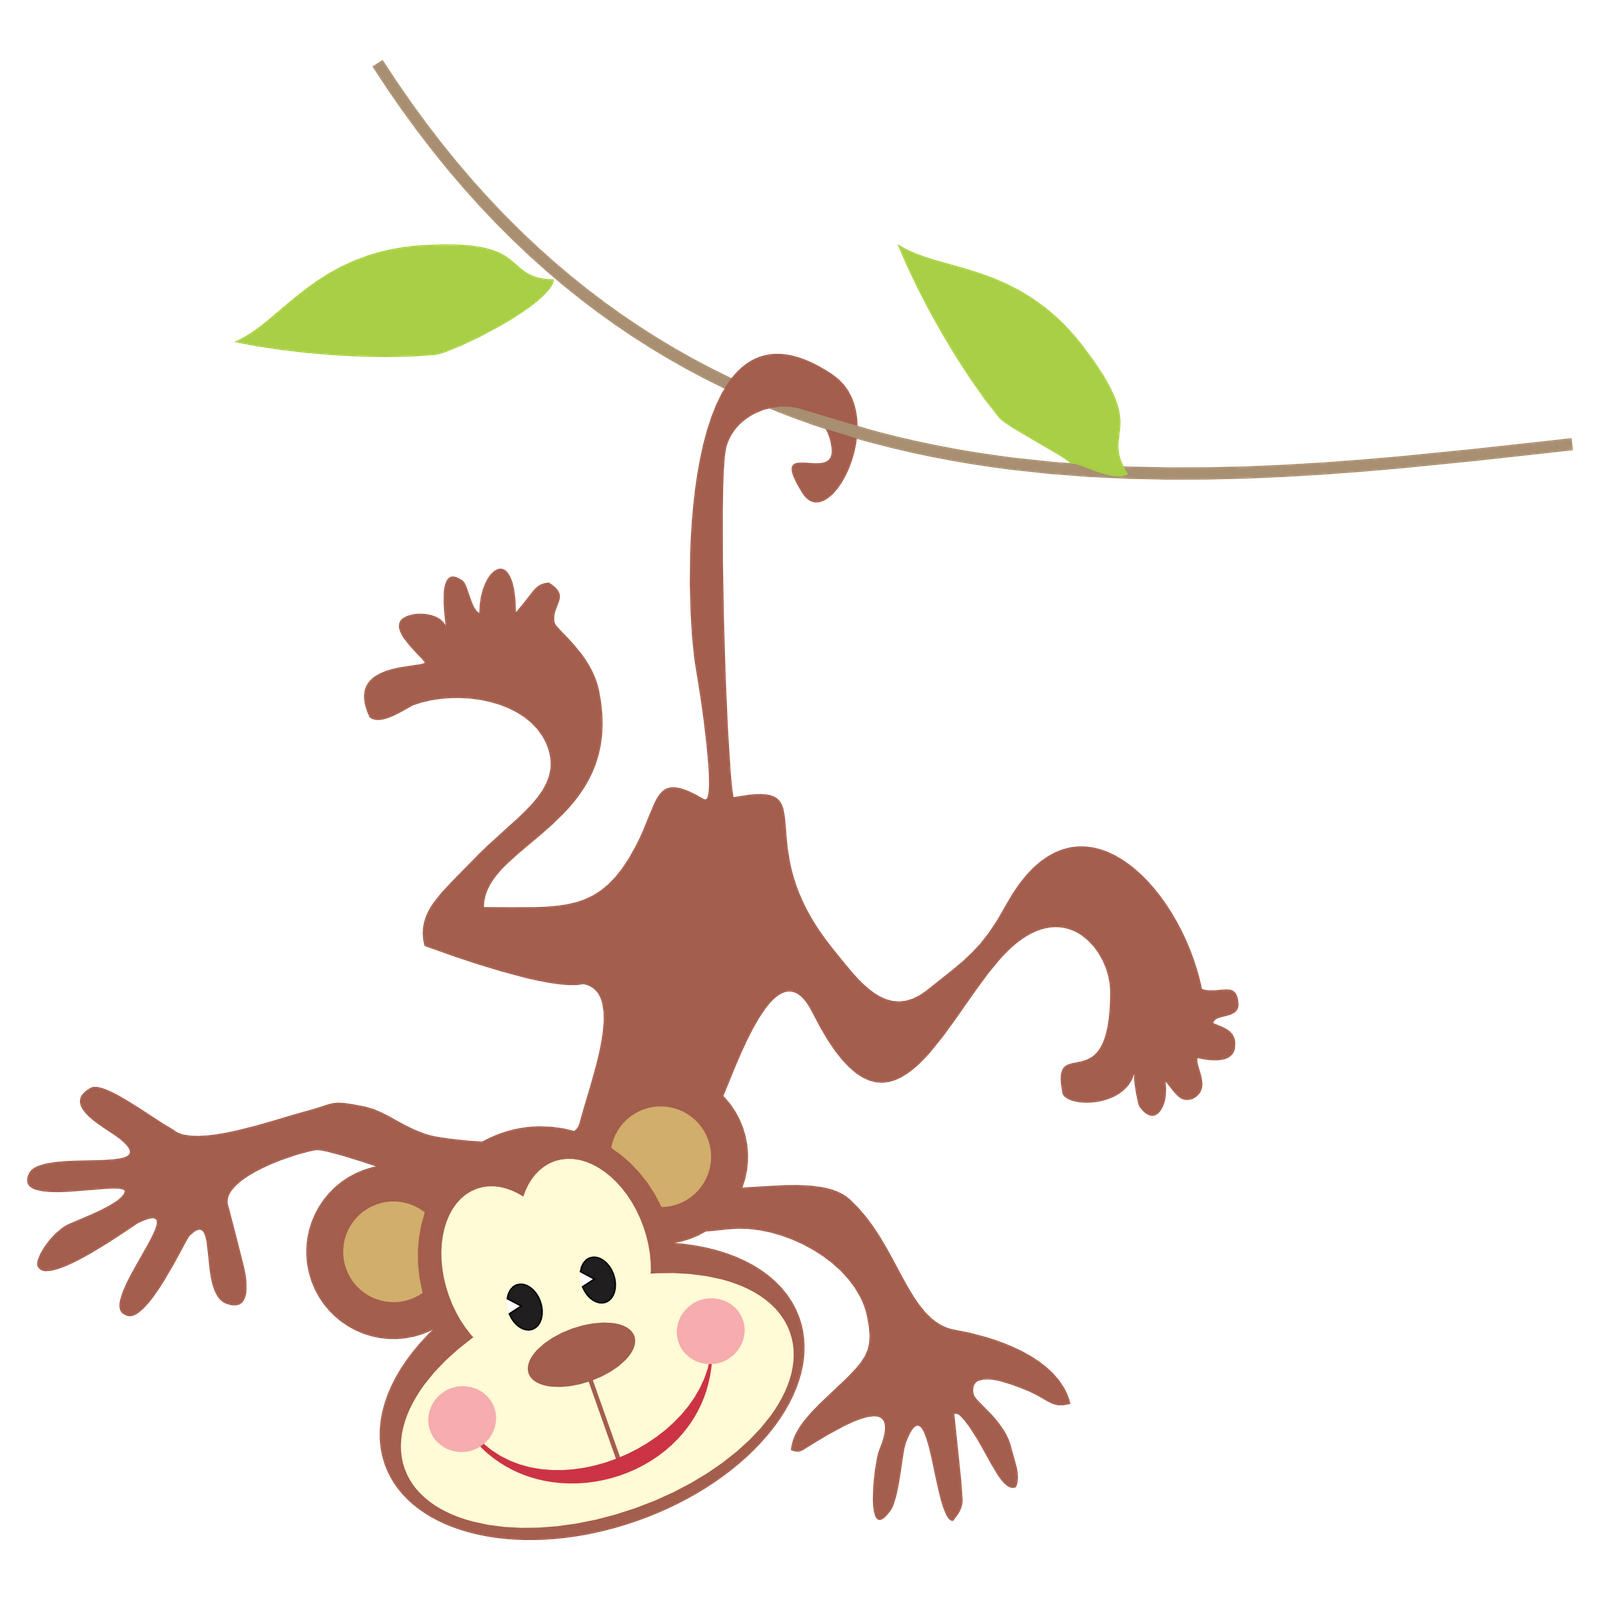 clipart image of monkey - photo #47